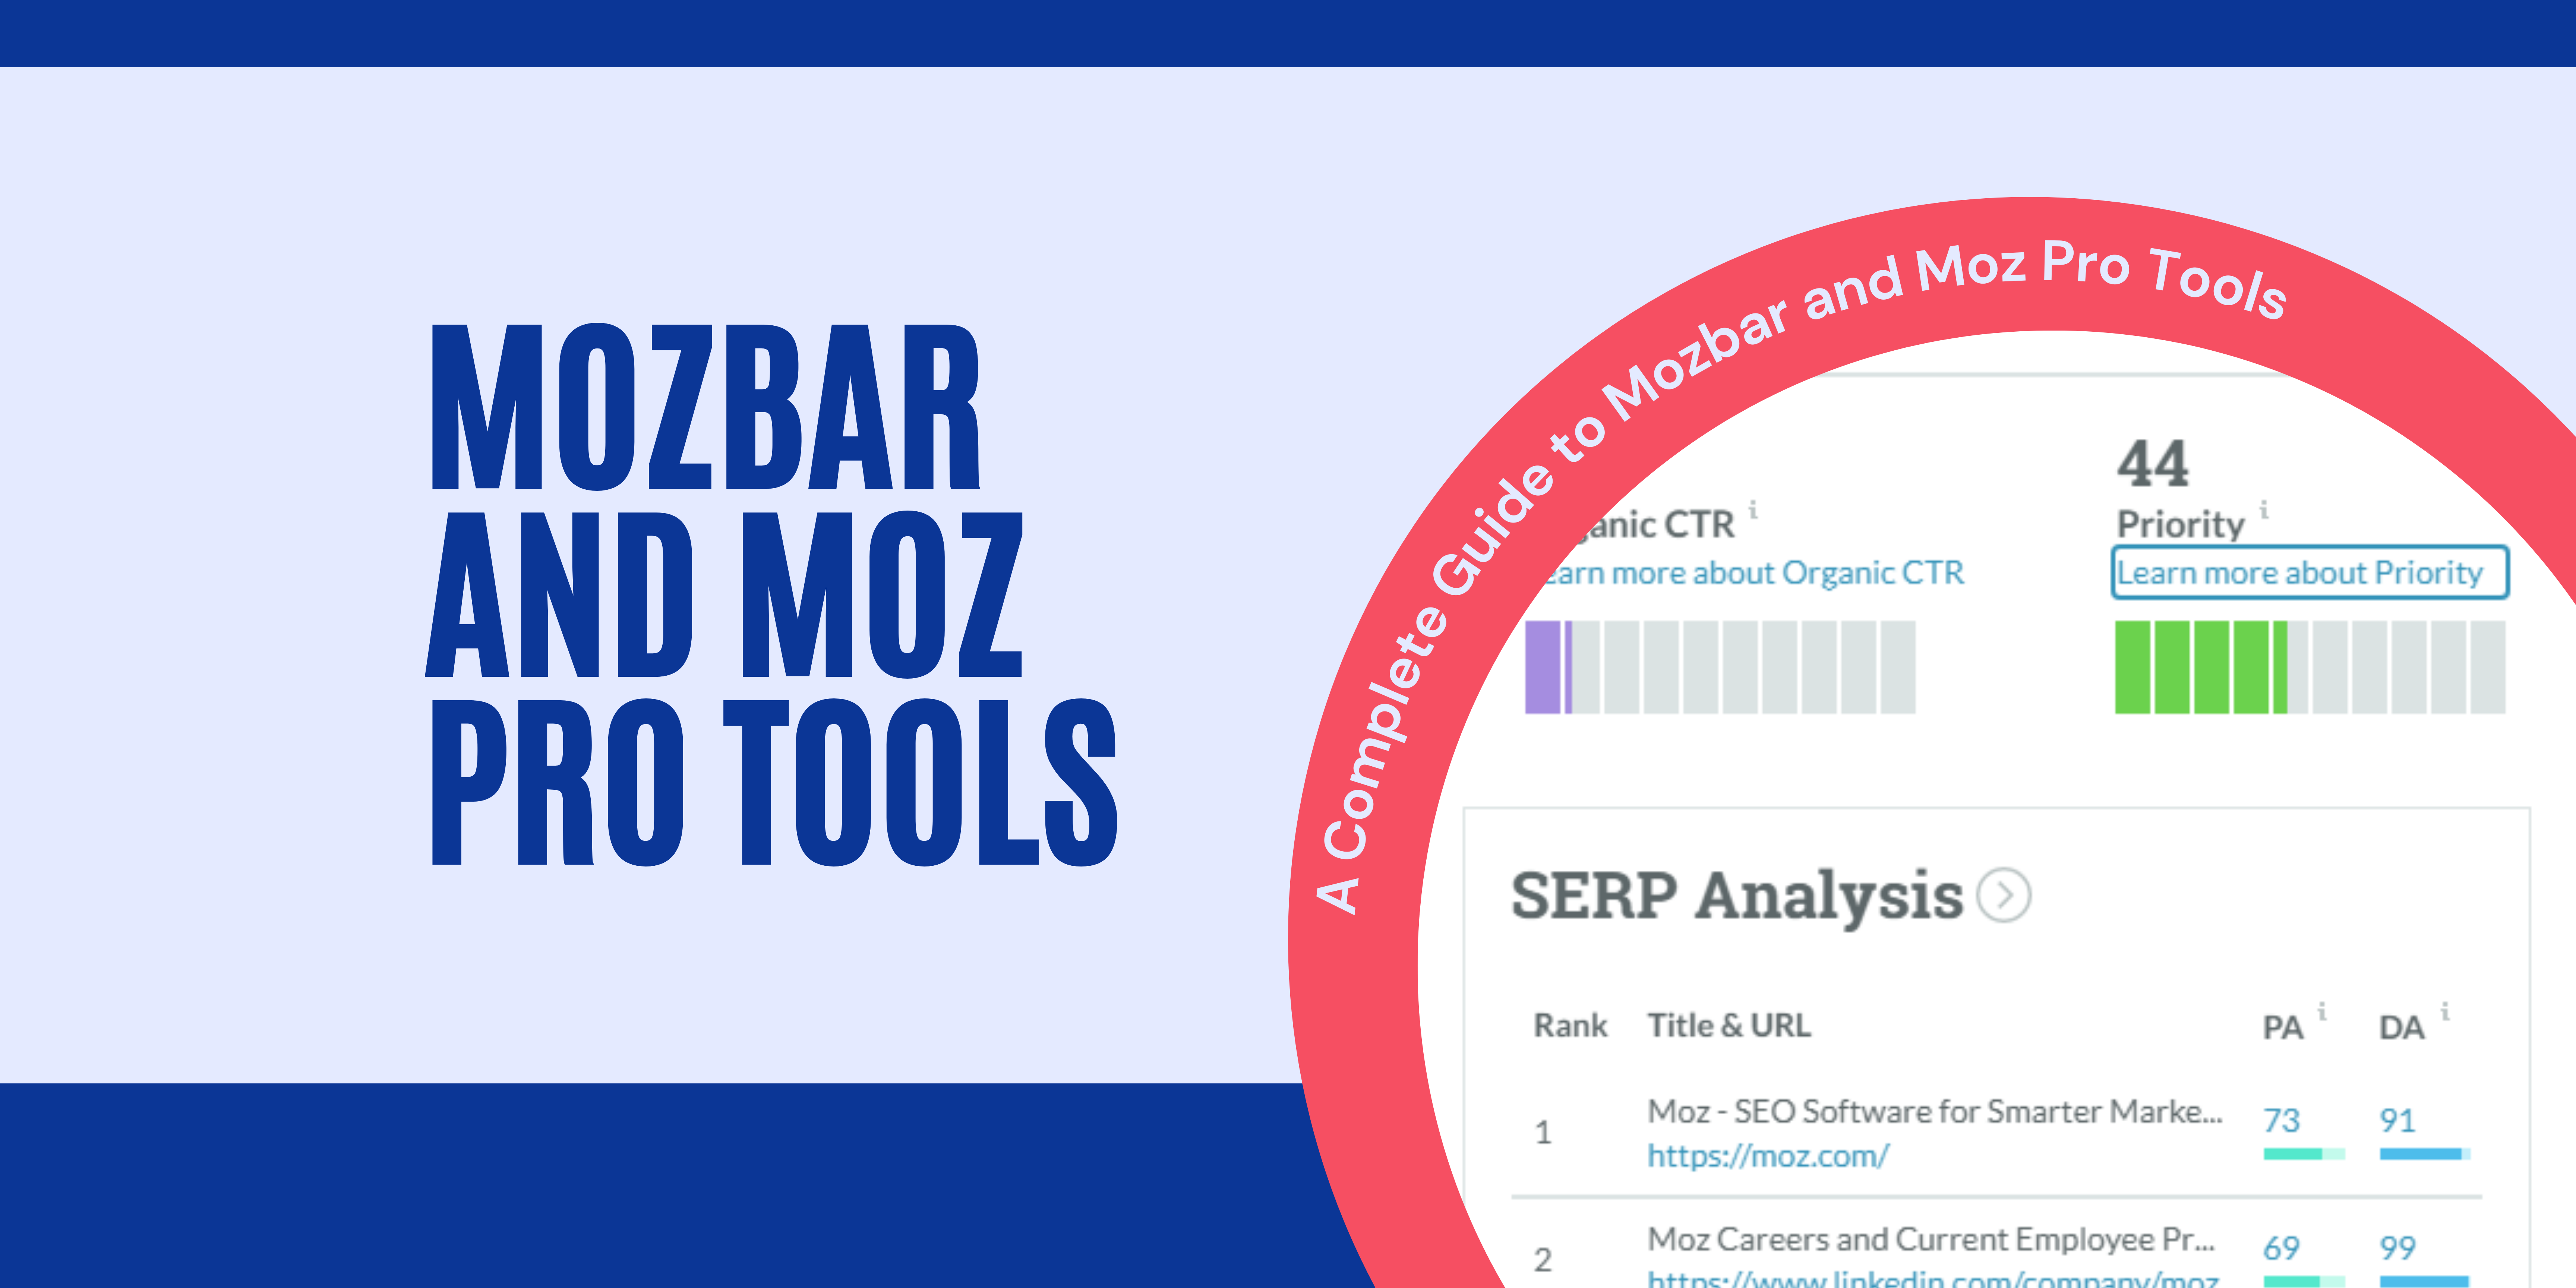 A Complete Guide to Mozbar and Moz Pro Tools